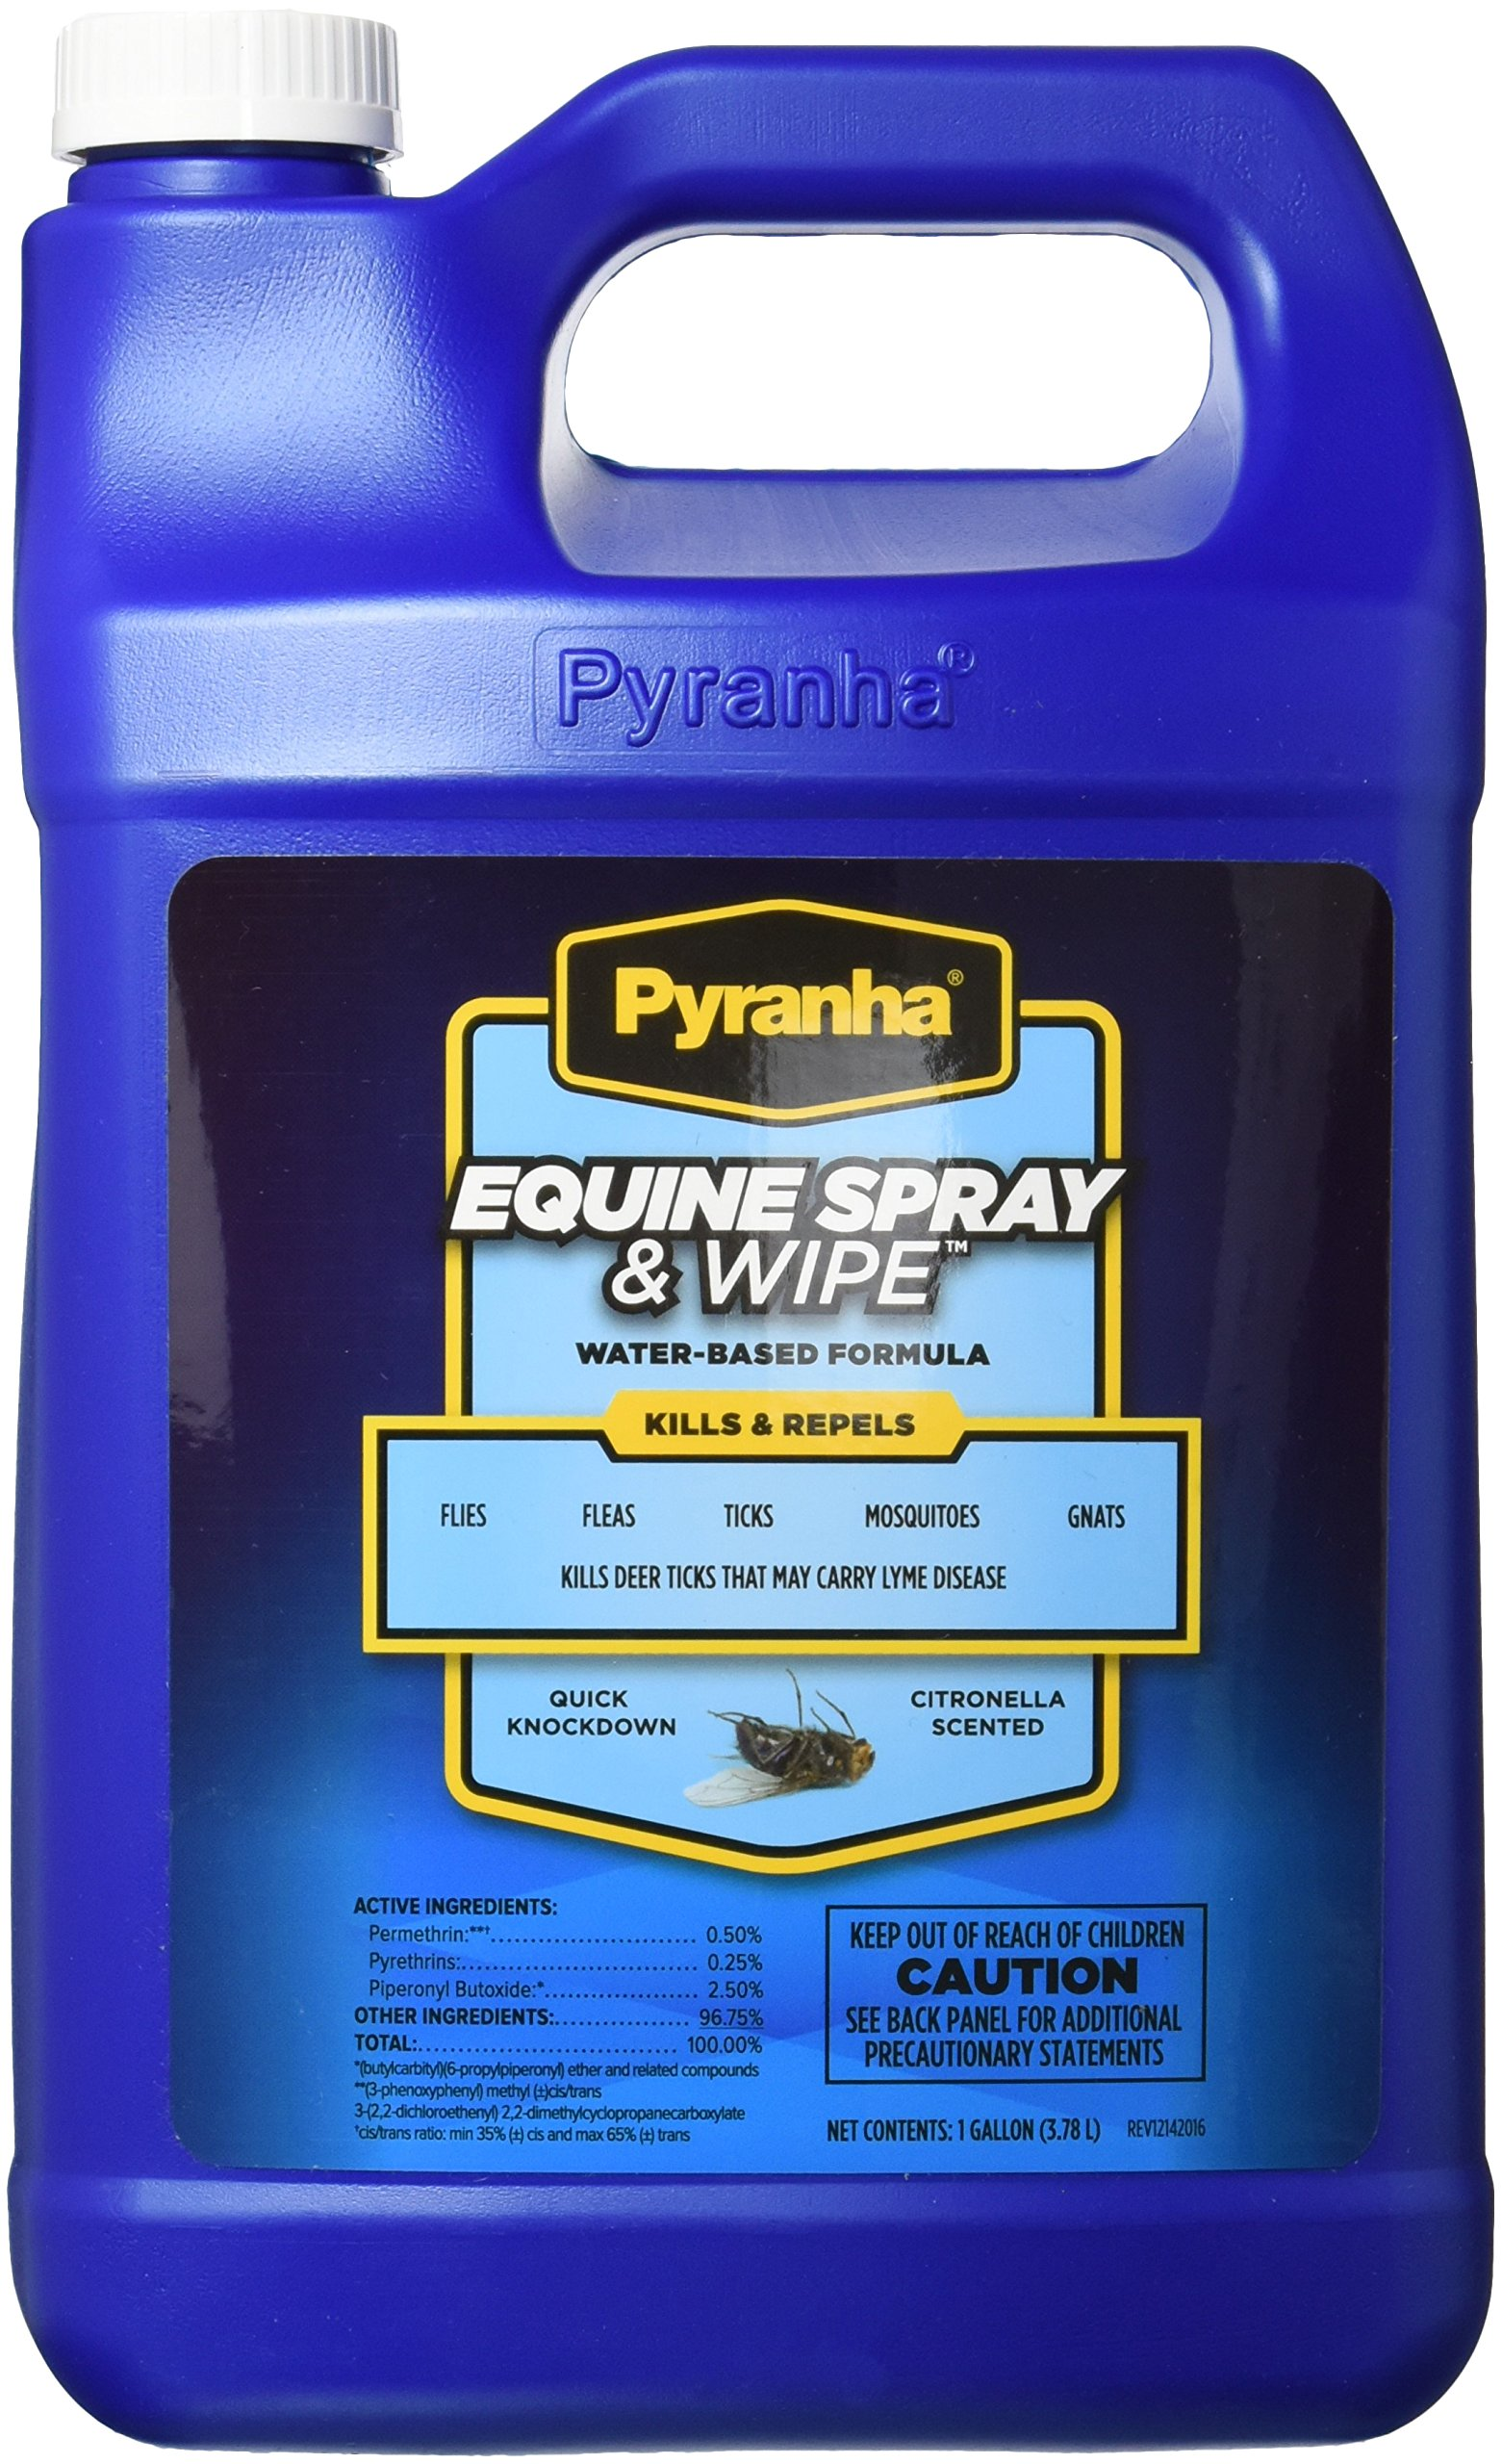 Pyranha 001EQSPG 068180 Equine Spray & Wipe Insect Repellent, 1 Gallon by Pyranha